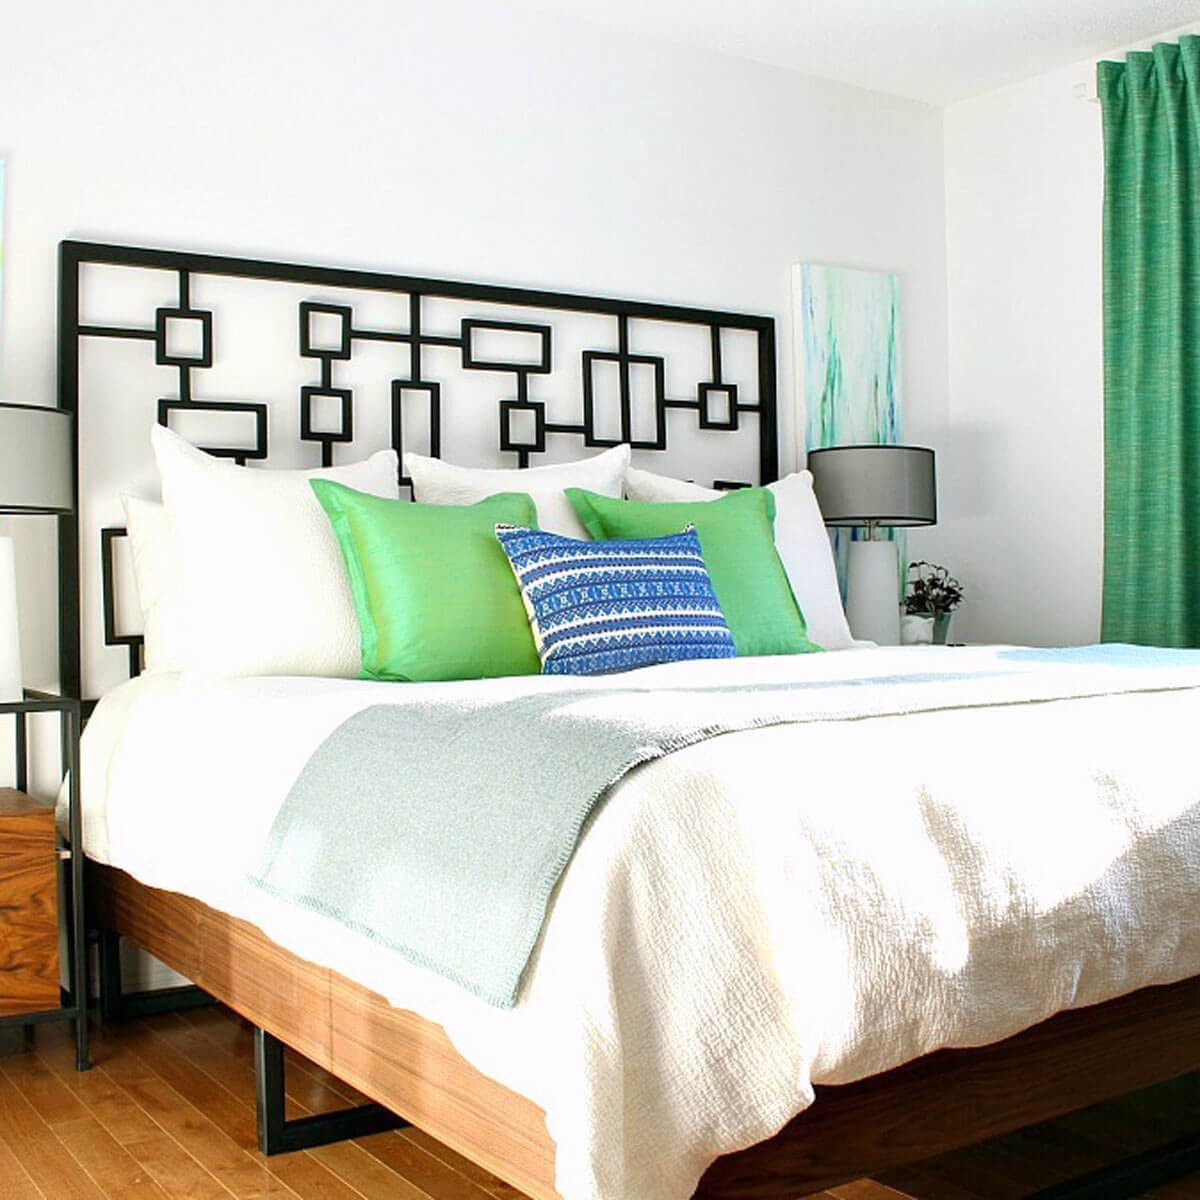 green-bedroom-decor diy bed frame